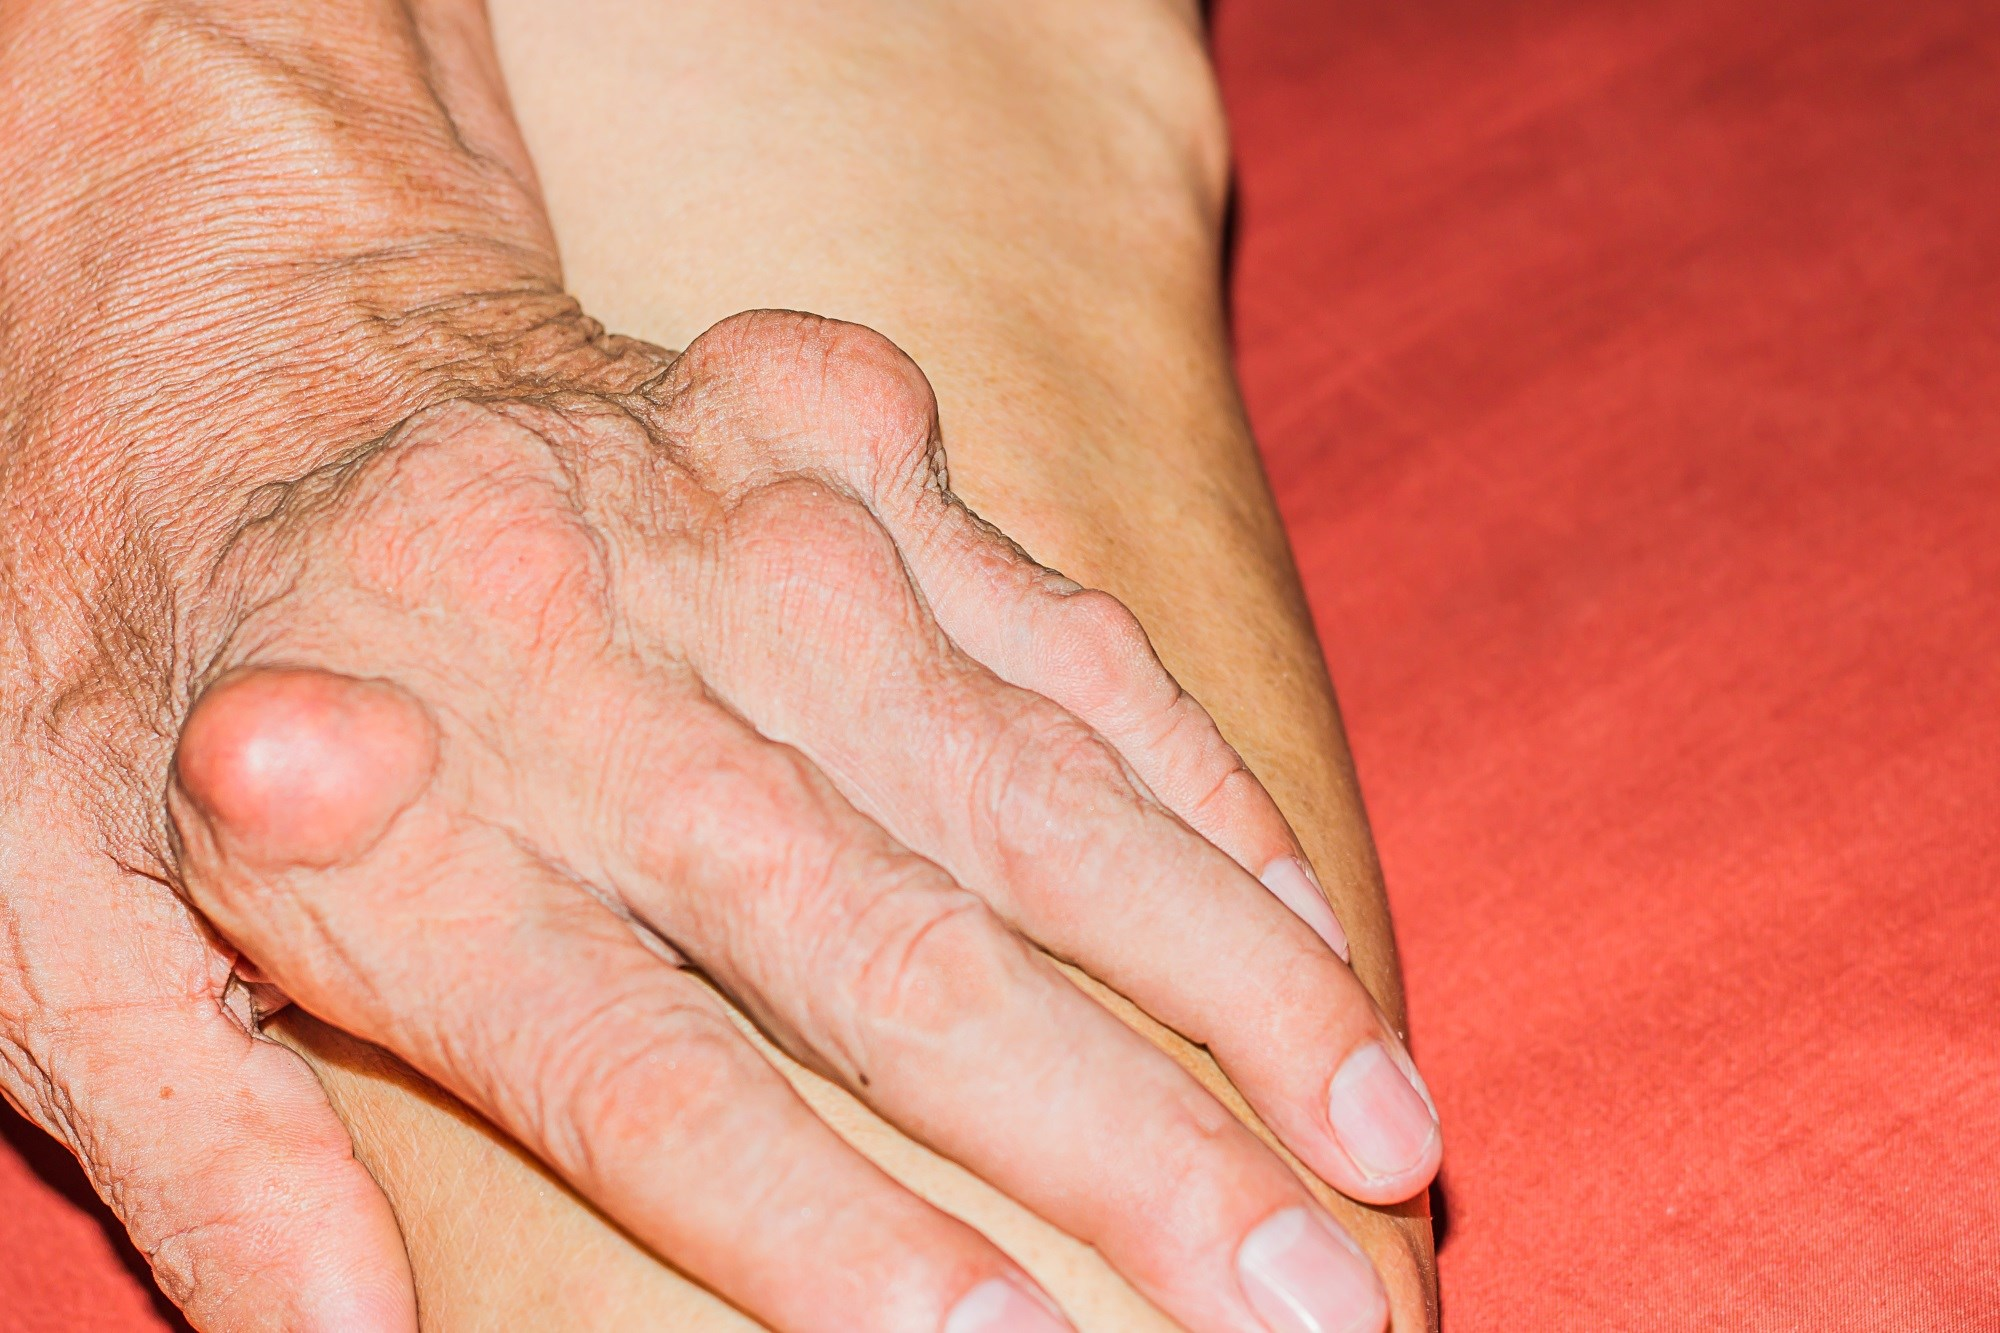 Anakinra May Be Effective for Treatment of Acute Gout Flares